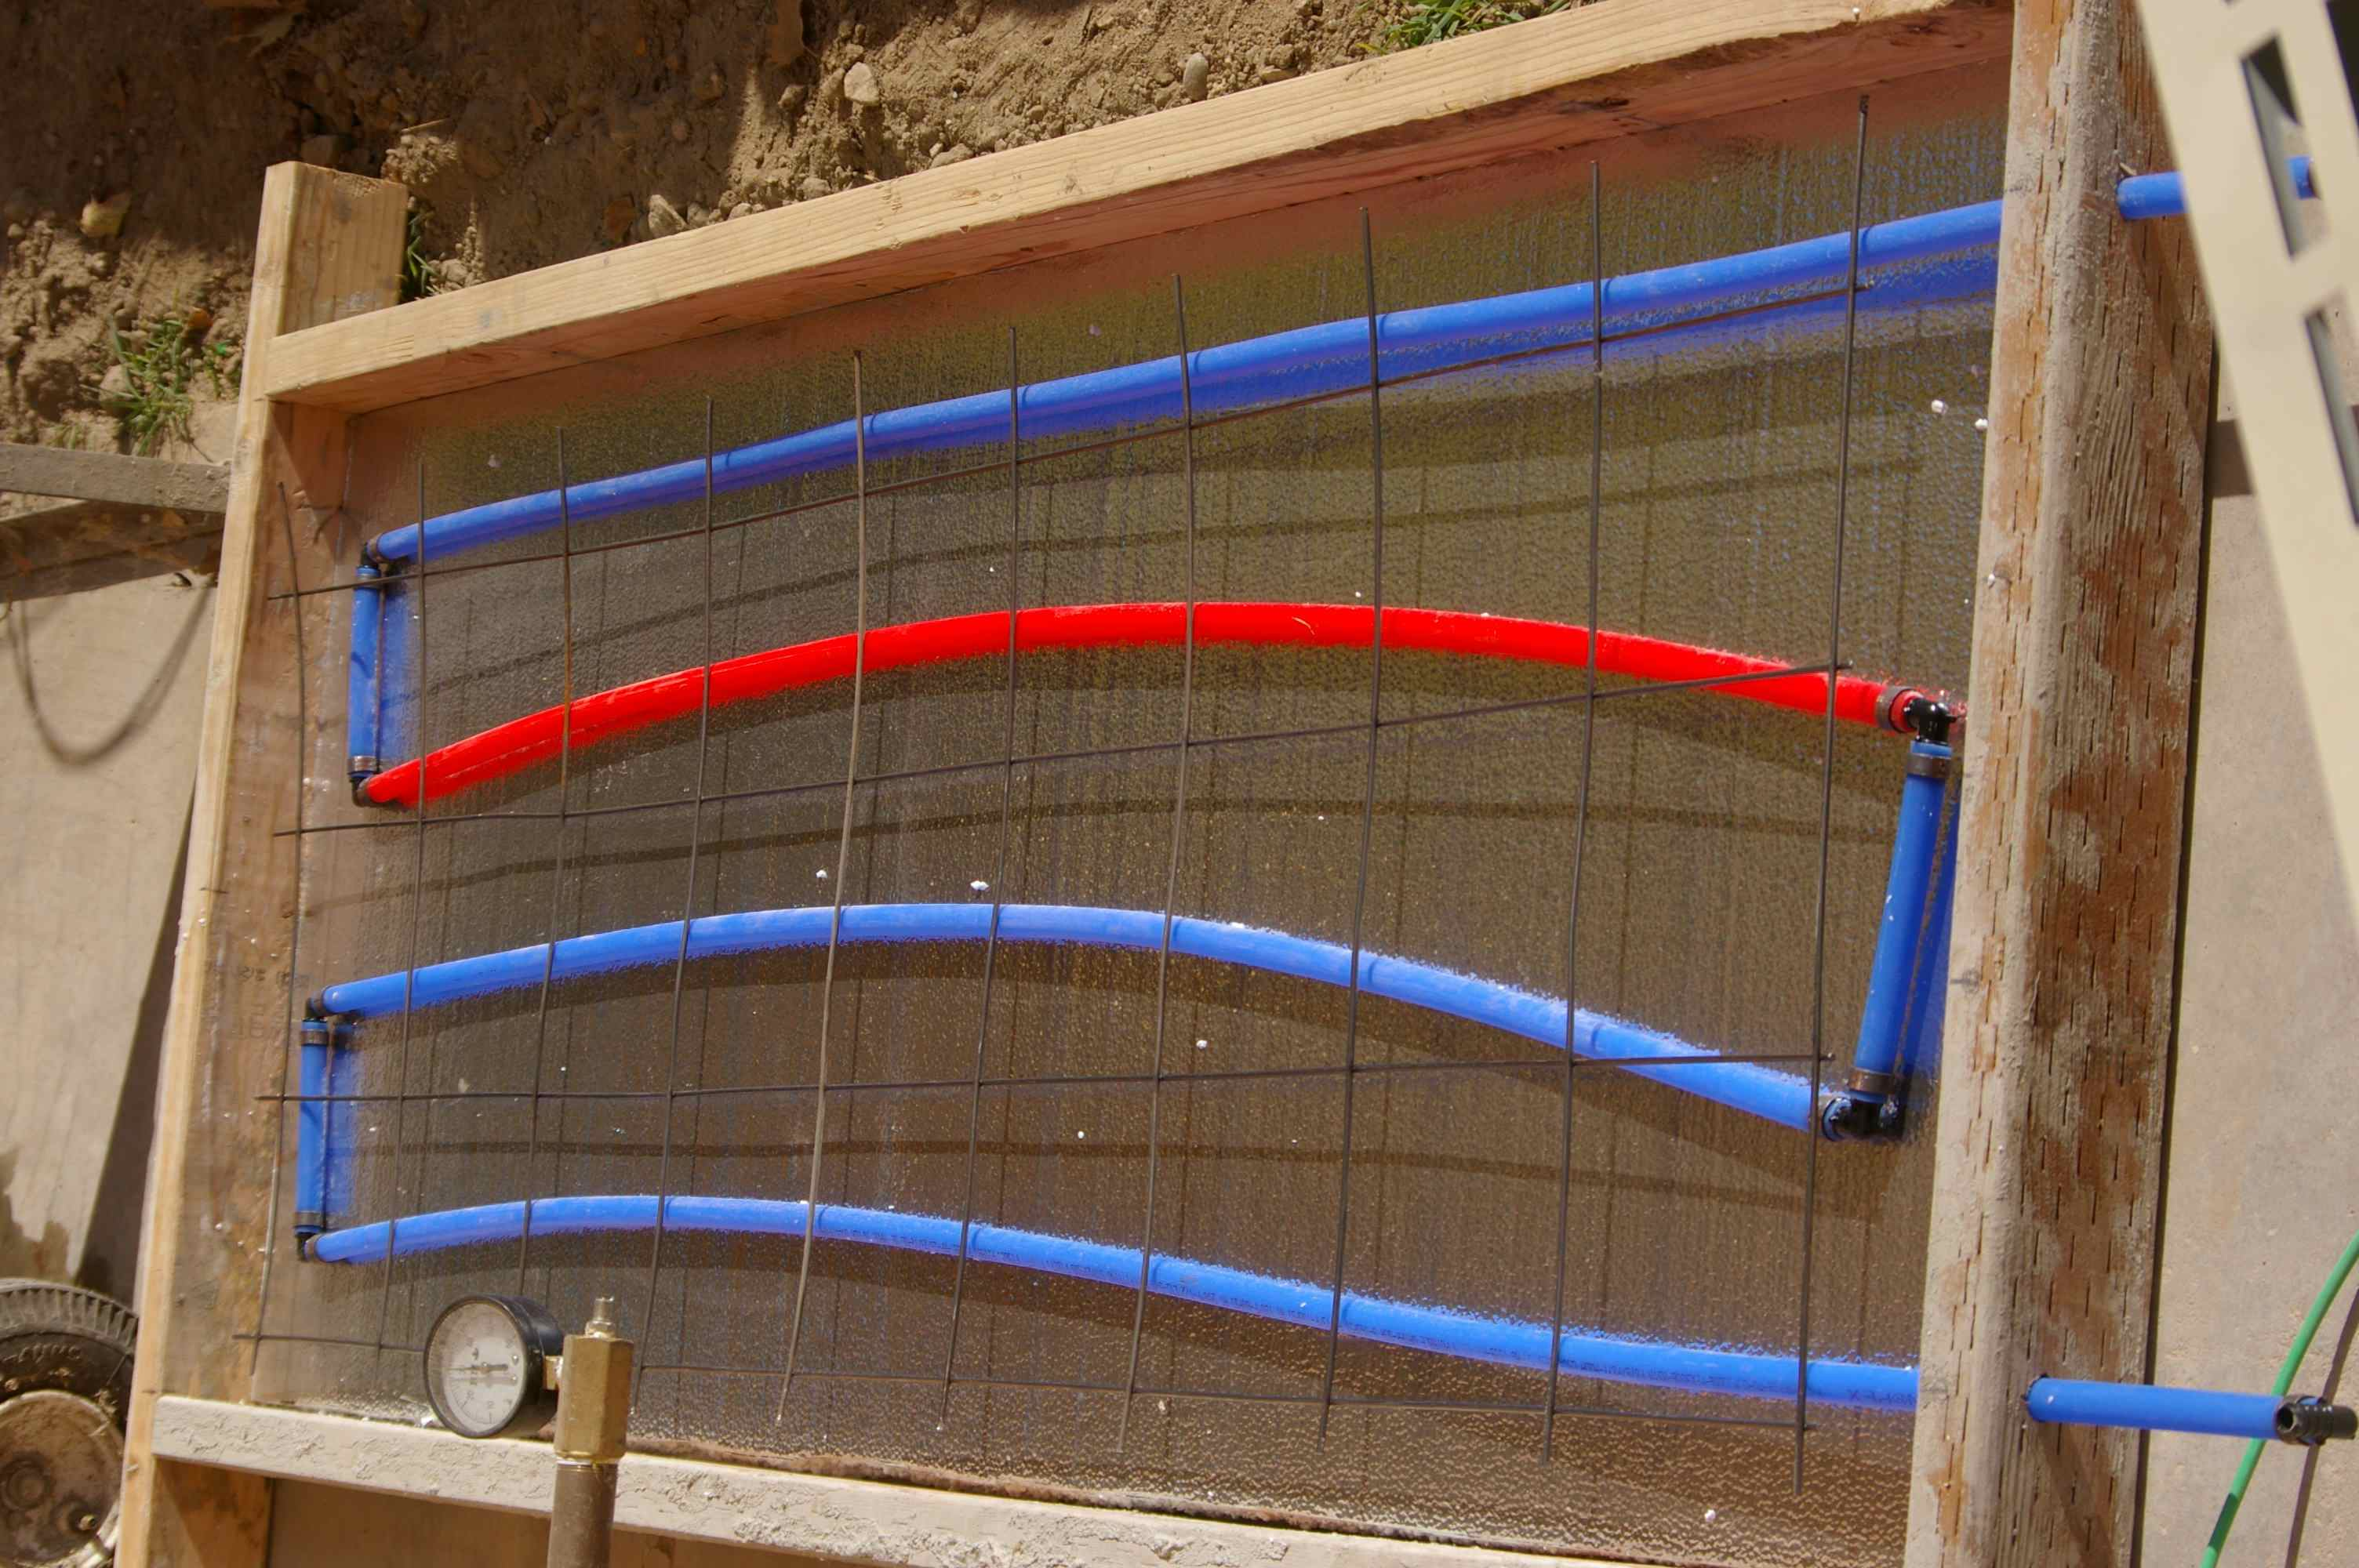 Heating Heater Tubing In Cement